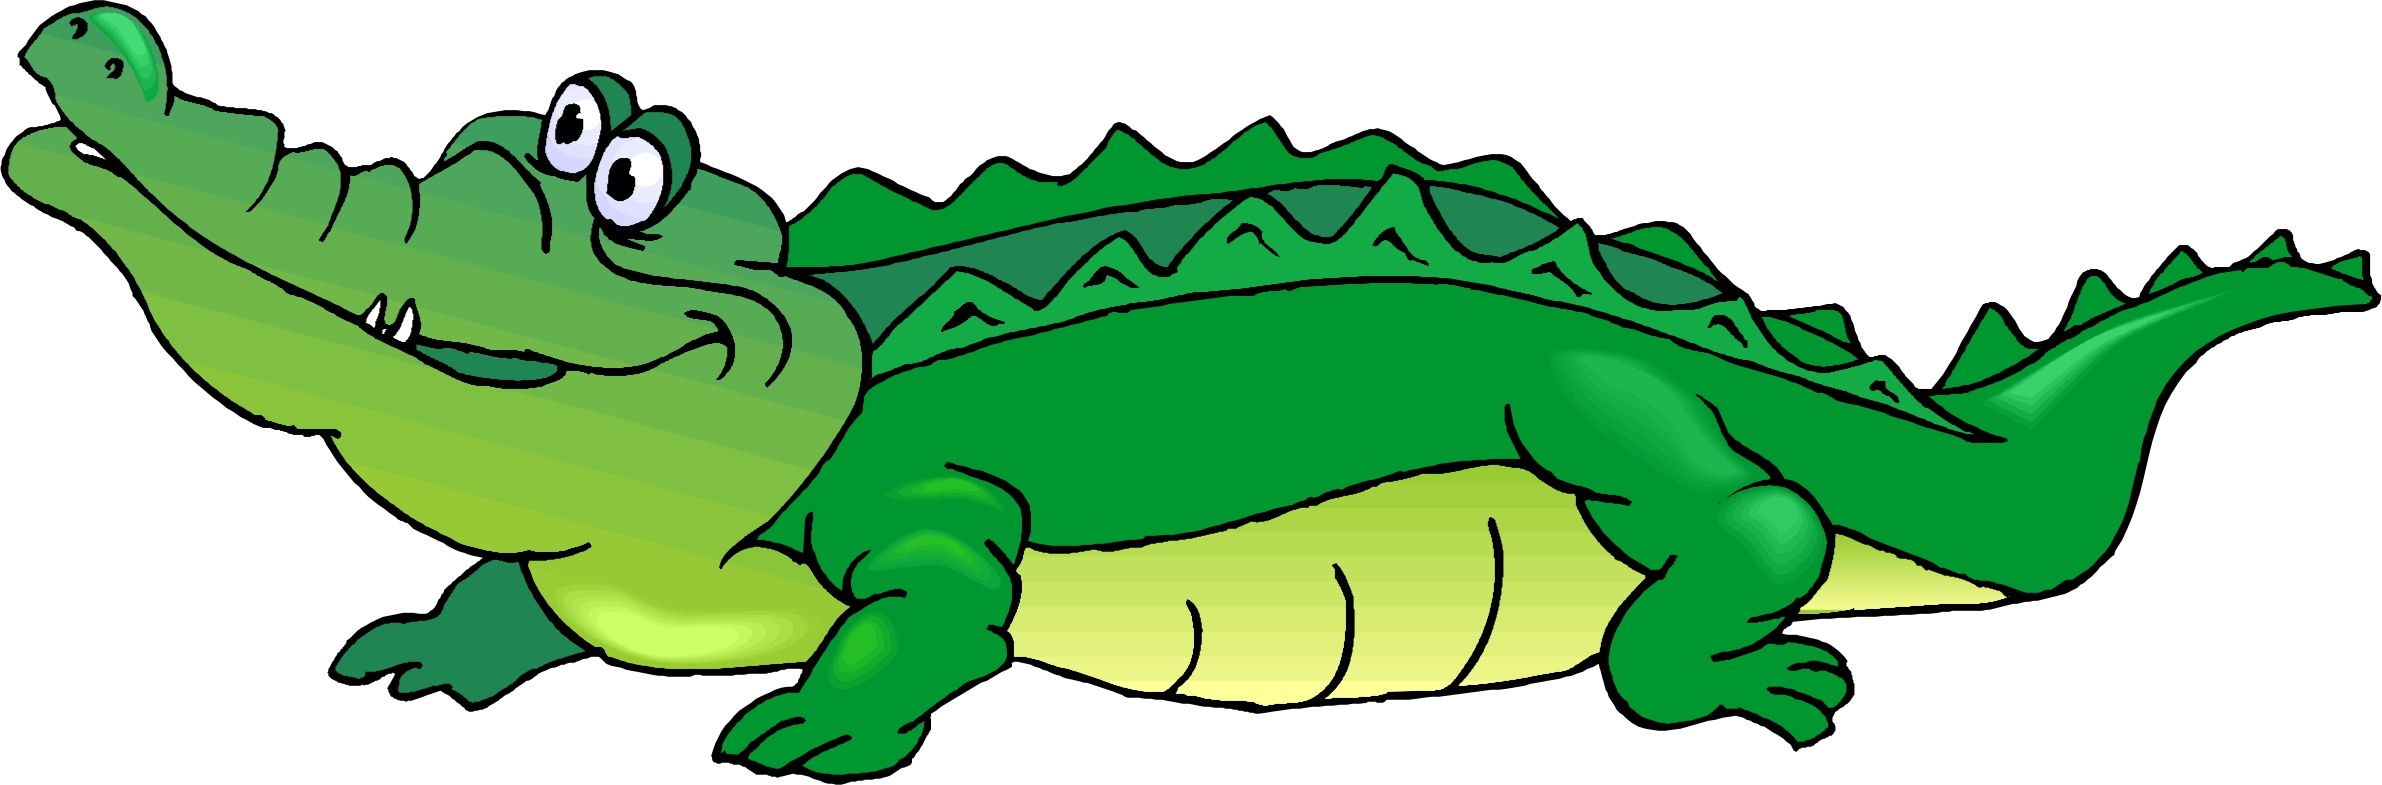 Alligator clipart #10, Download drawings